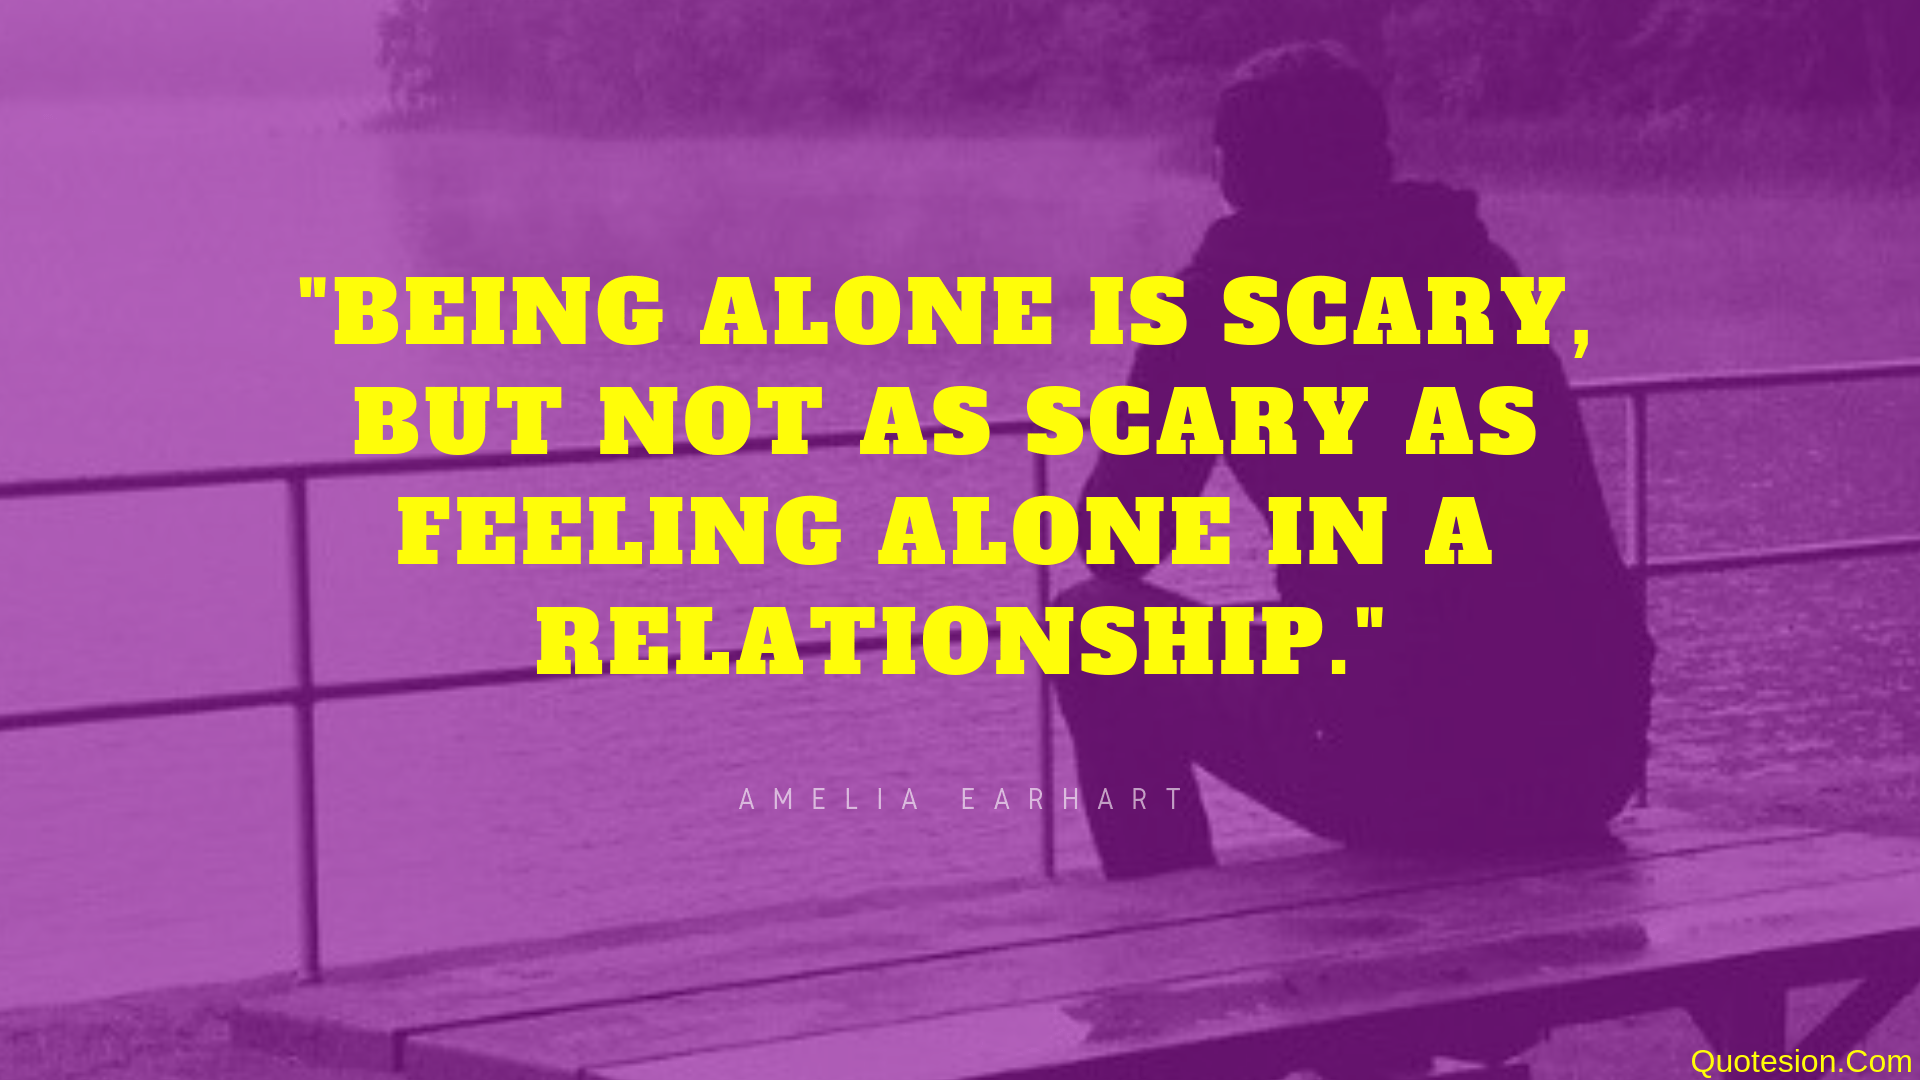 """Being alone is scary, but not as scary as feeling alone in a relationship."" -Amelia Earhart- [1920×1080]"